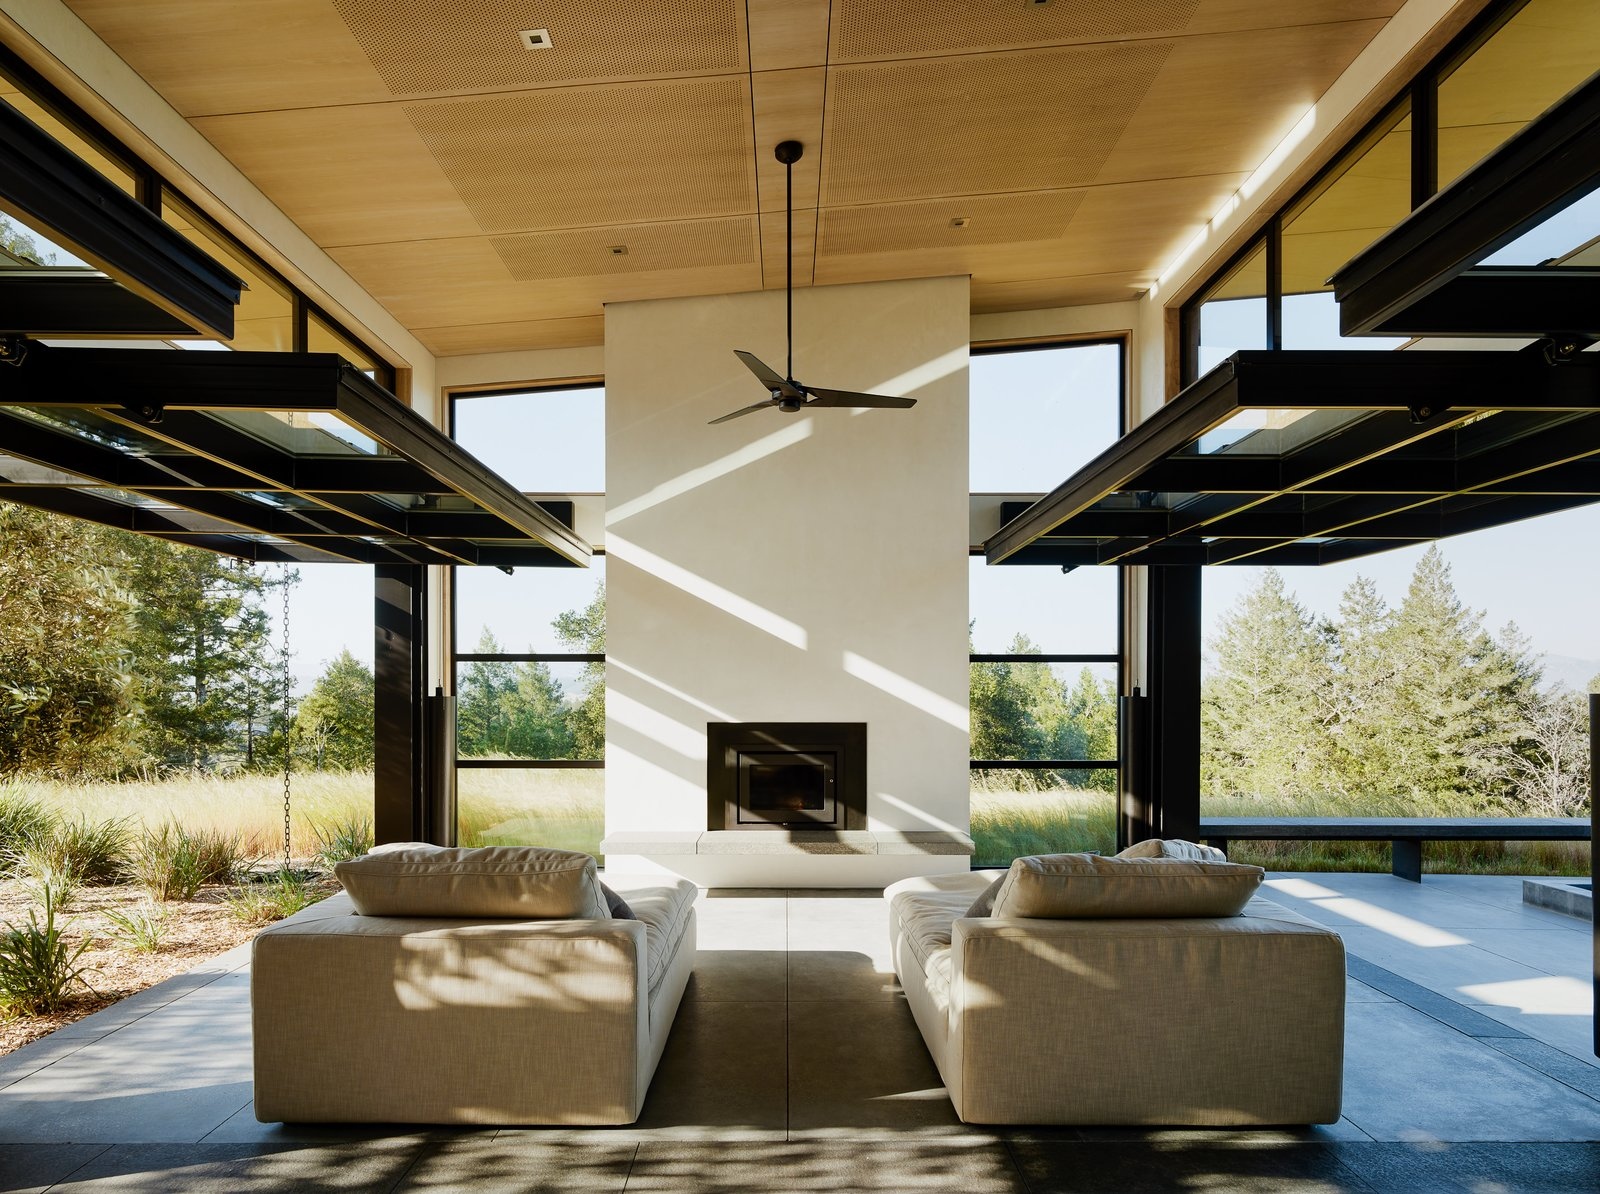 Top 5 Homes of the Week That Welcome the Outdoors In